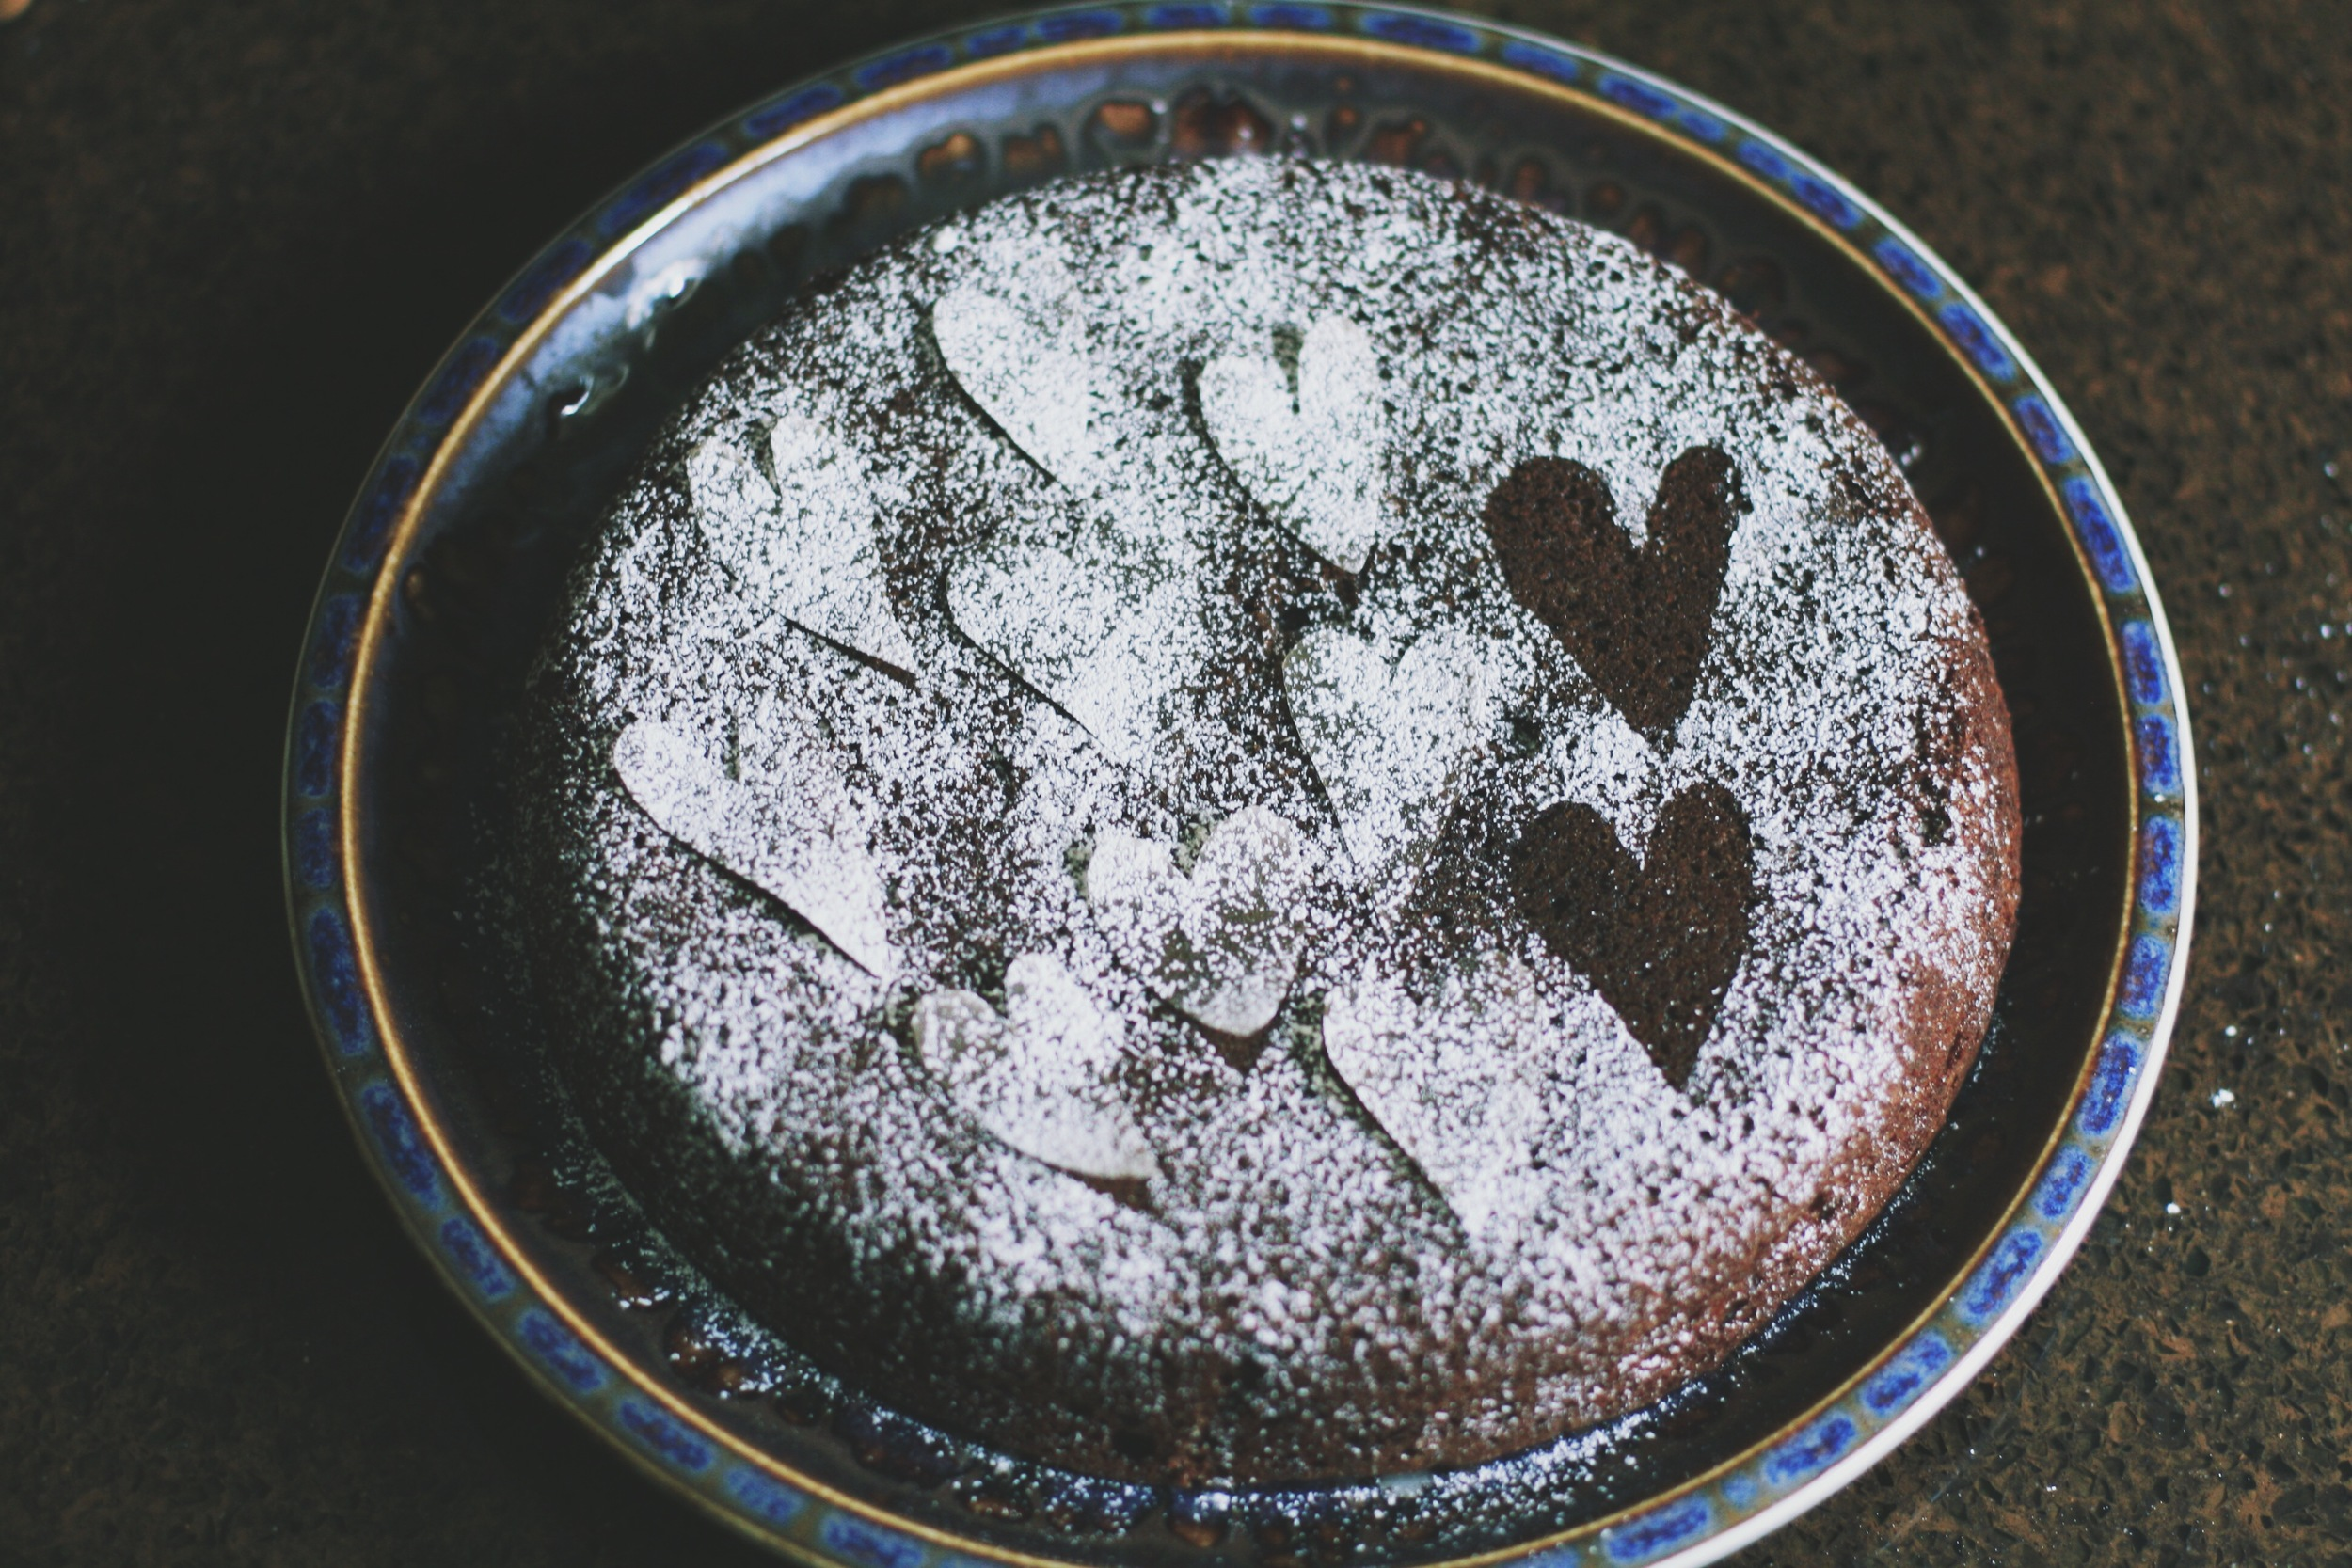 I cut wax paper hearts and sifted powdered sugar over them